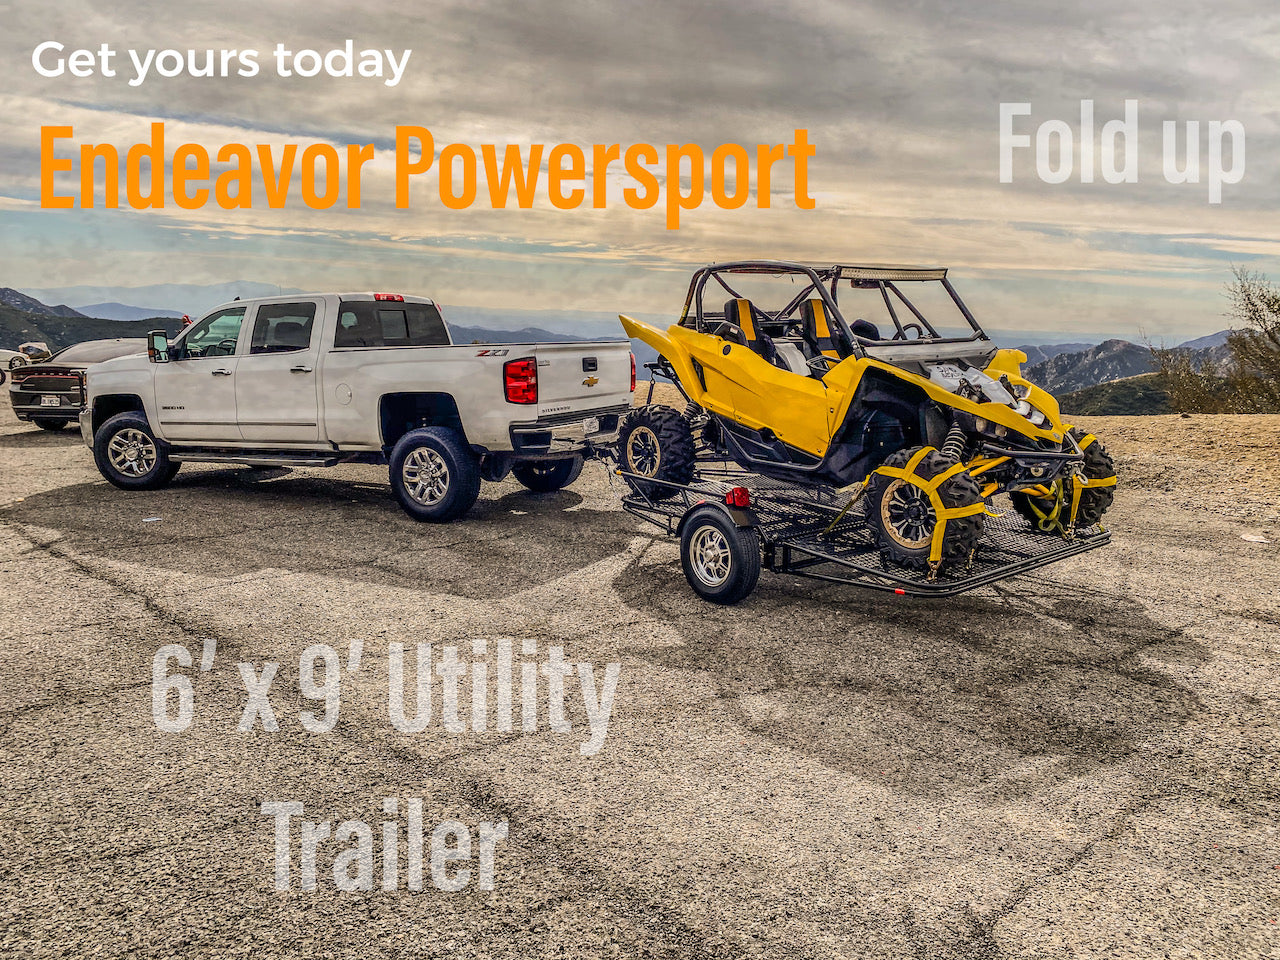 UDATE A UTILITY TRAILER FOR ALL PURPOSE POWERSPORTS NOT A KENDON TRAILER folding utility trailer - stand up utility trailer - Smart Car trailer - stand up atv  trailer